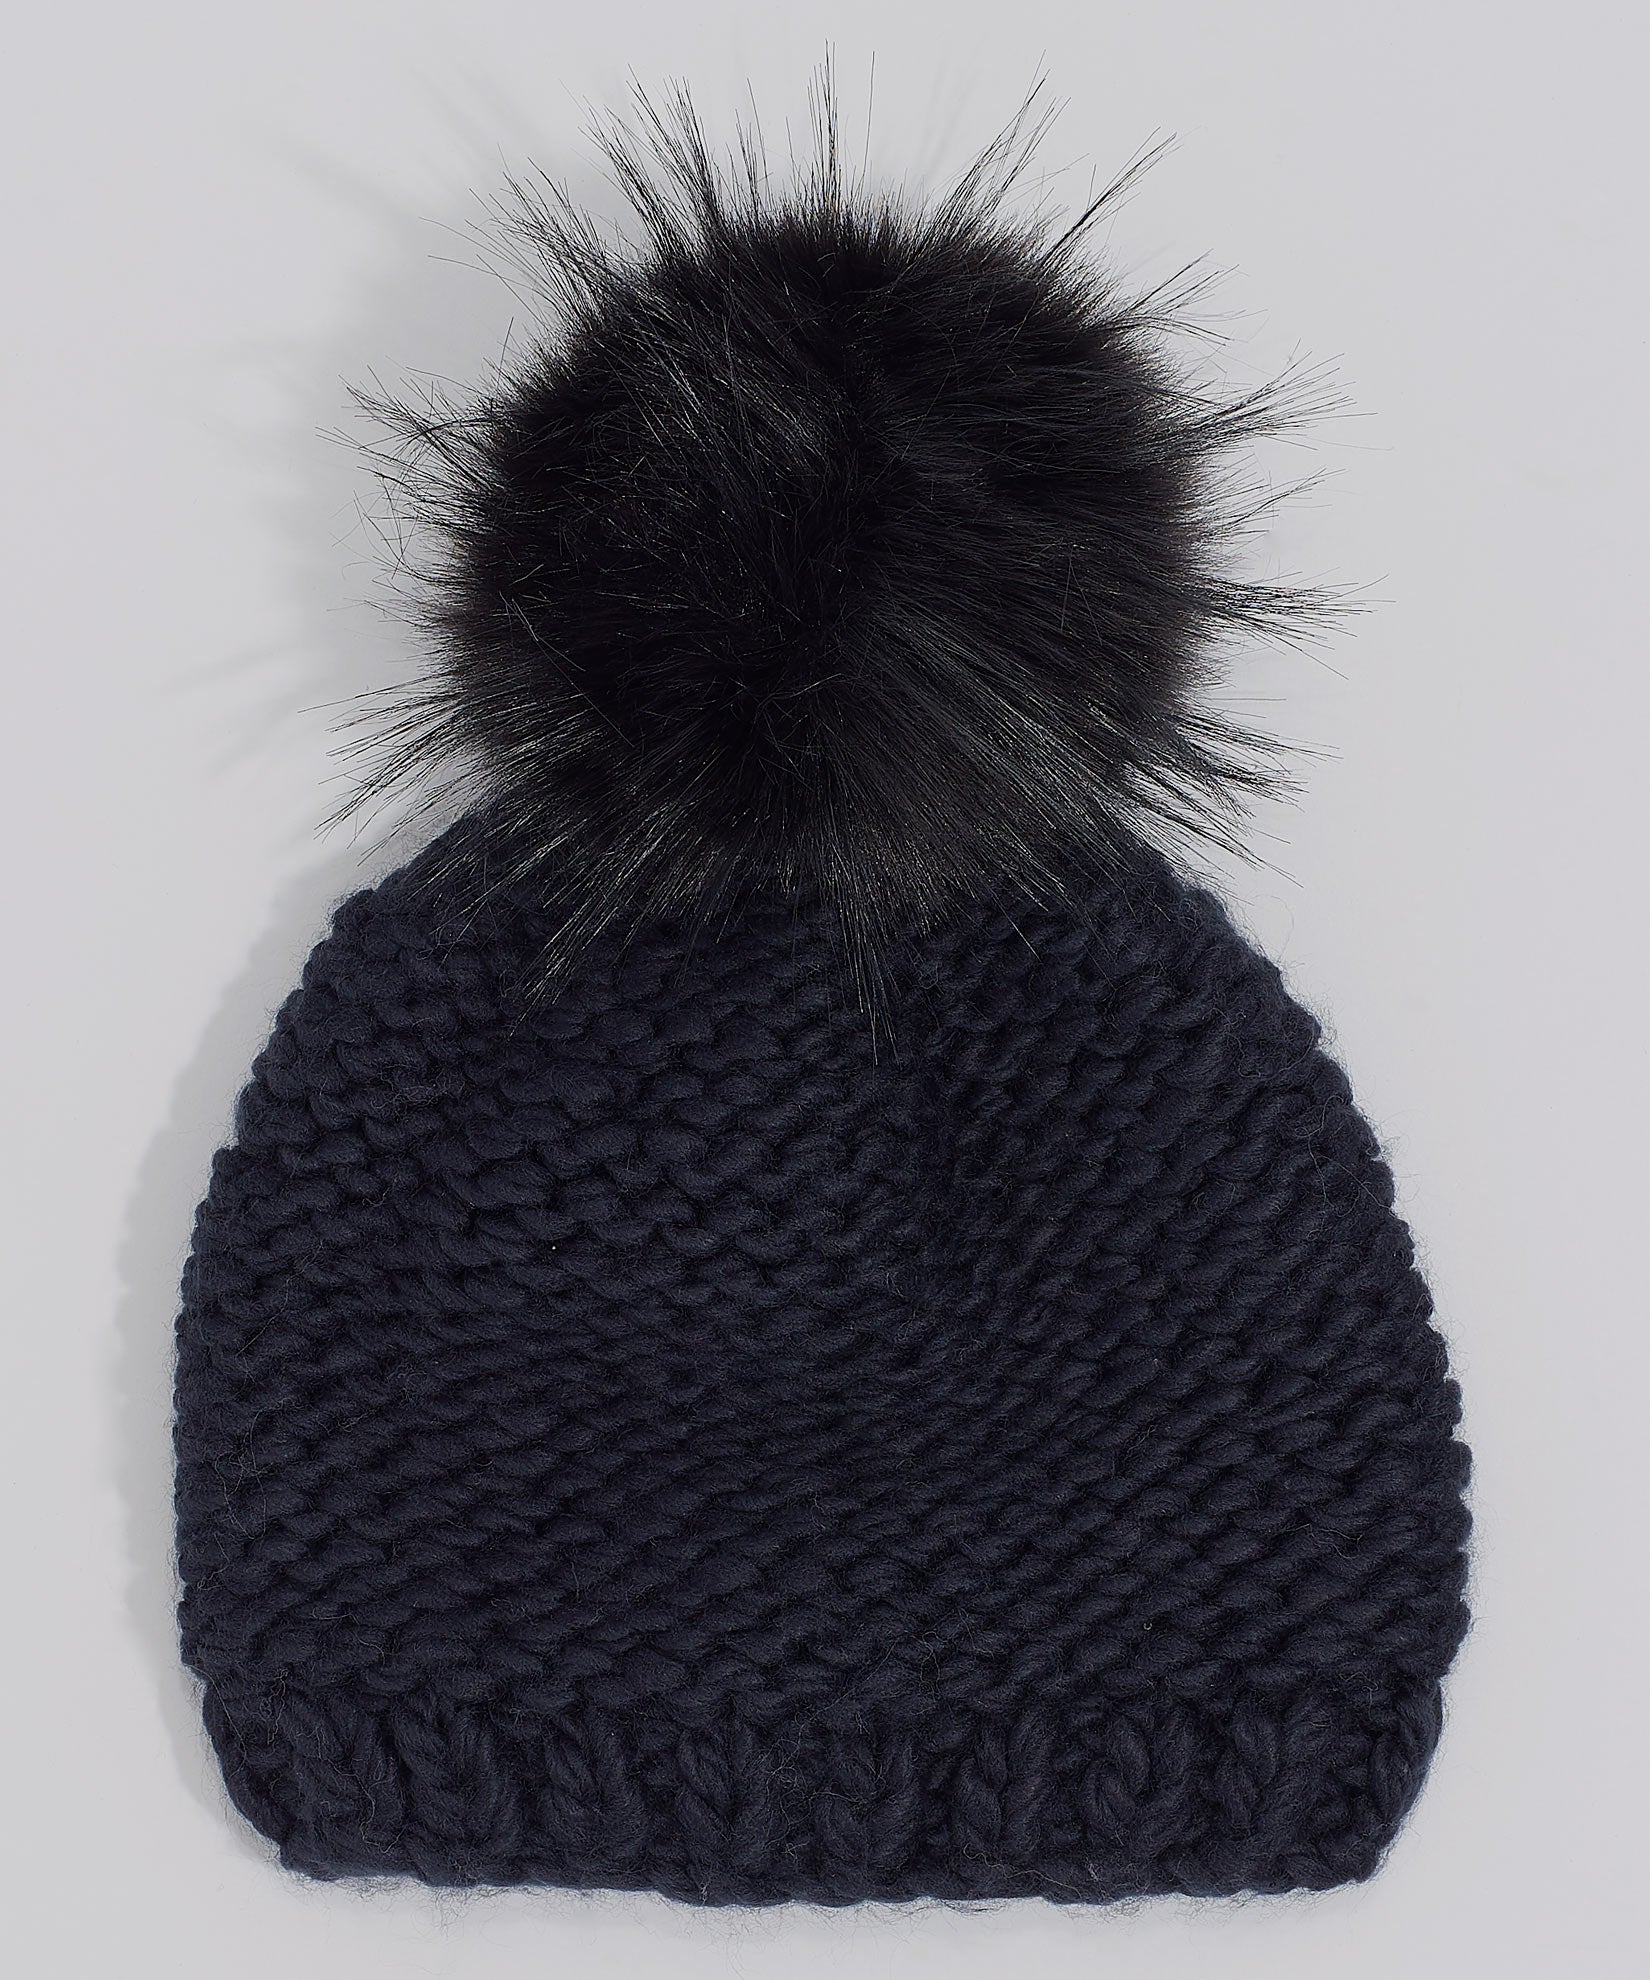 Echo Black - Chunky Knit Beanie With Faux Fur Pom